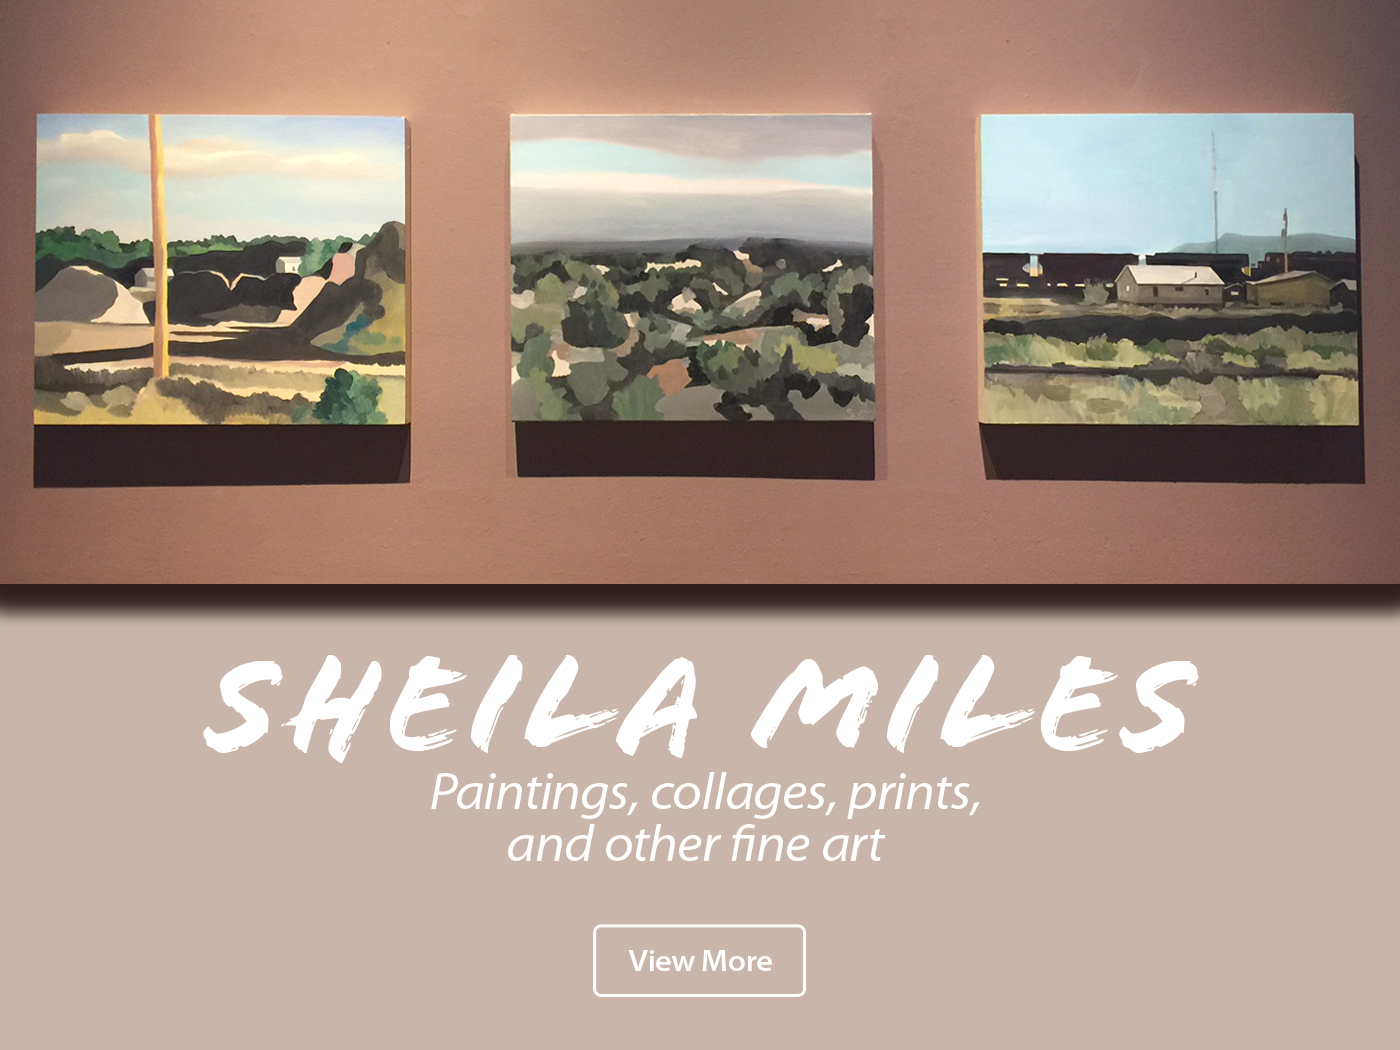 Image featuring three fine art paintings by Sheila Miles of Sante Fe